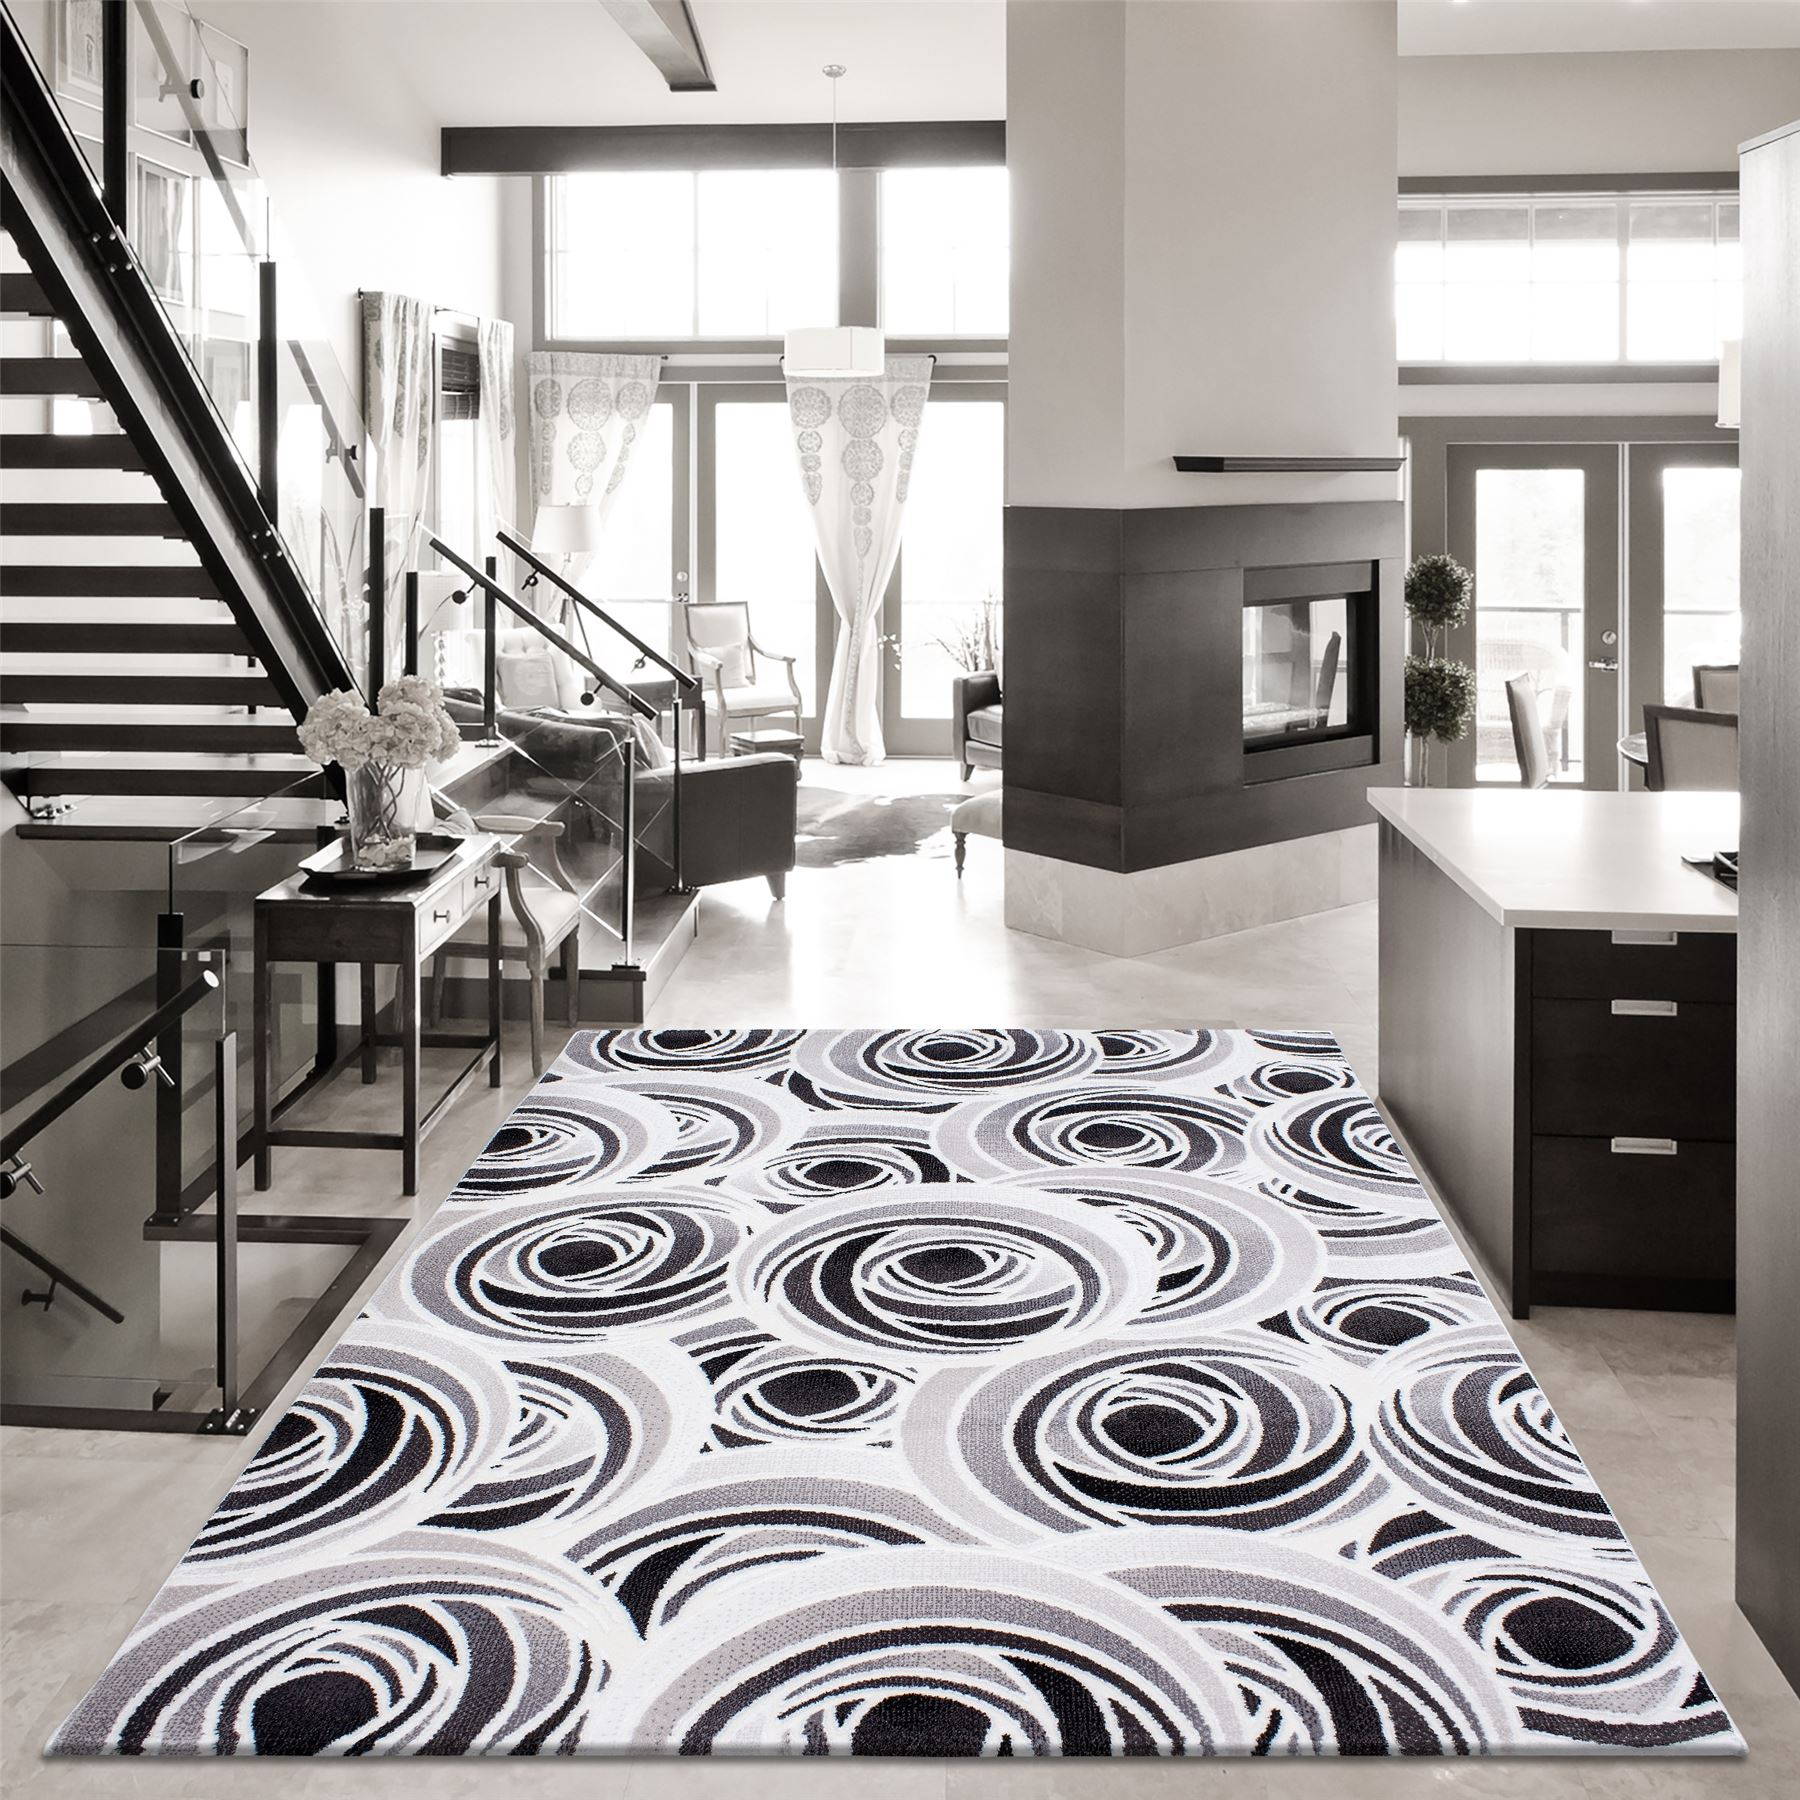 modern quality designer contemporary rugs extra large black grey  - modernqualitydesignercontemporaryrugsextralargeblack